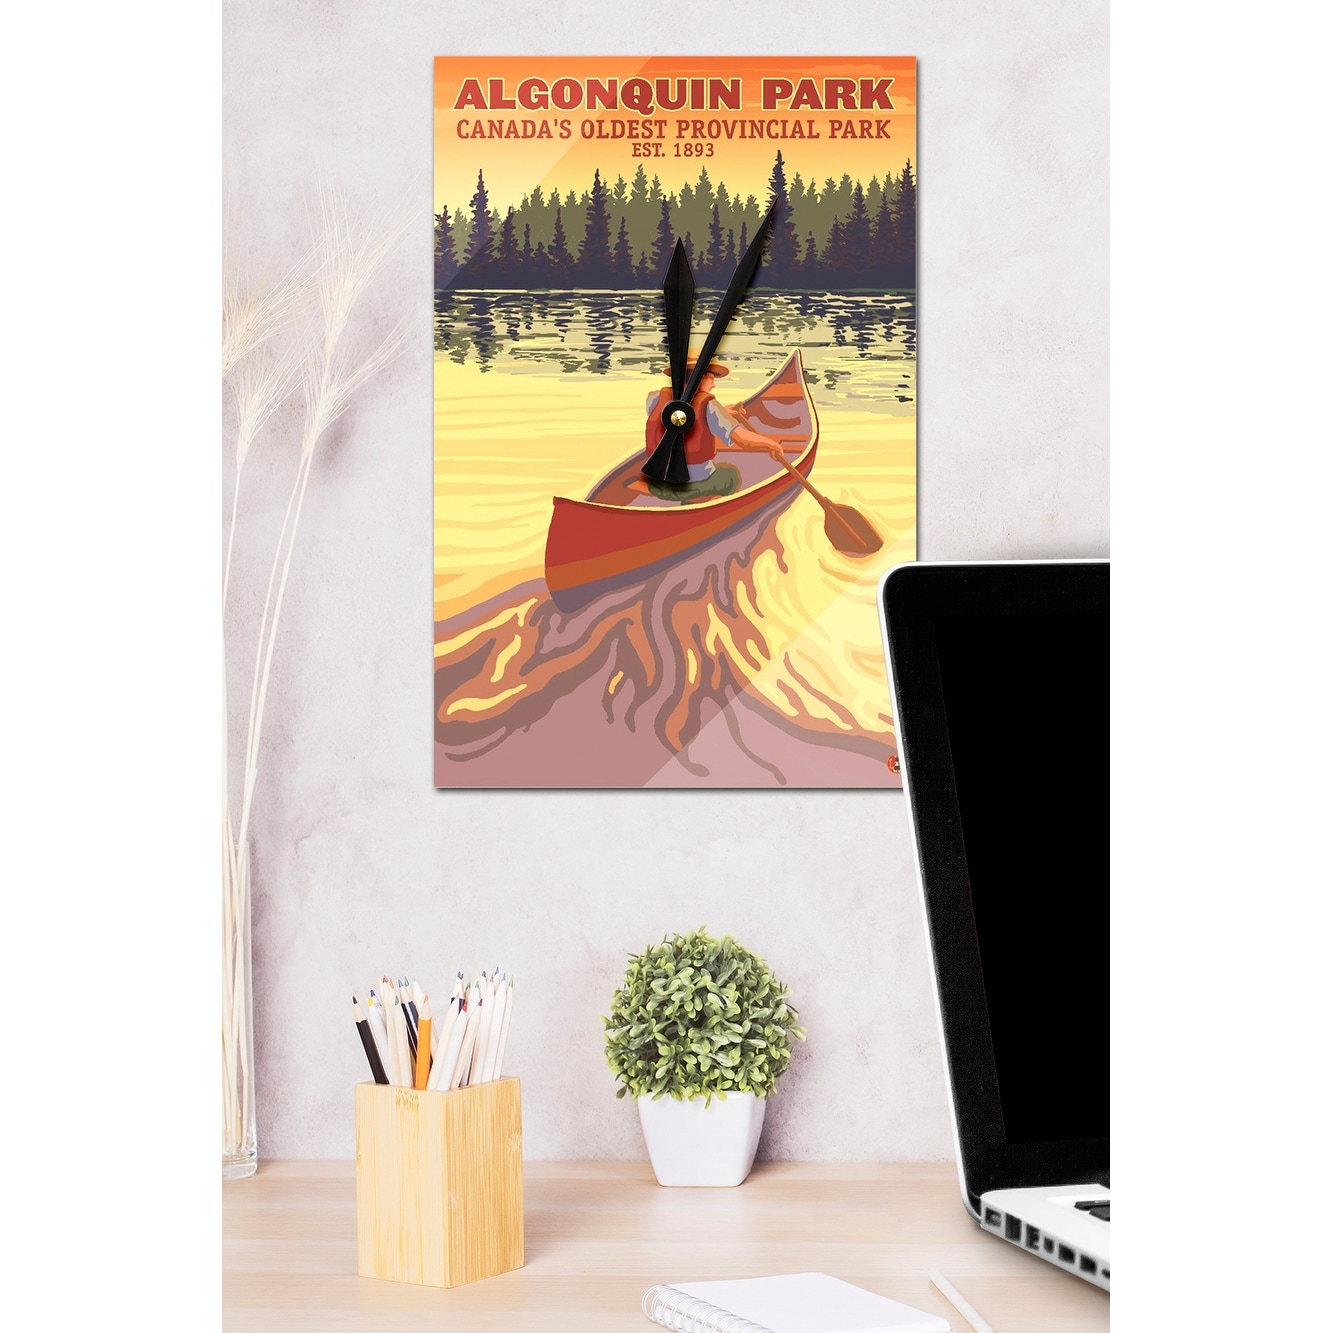 Shop Algonquin Provincial Park Ontario Canada Lantern Press Artwork Acrylic Wall Clock Acrylic Wall Clock Free Shipping On Orders Over 45 Overstock 13598817